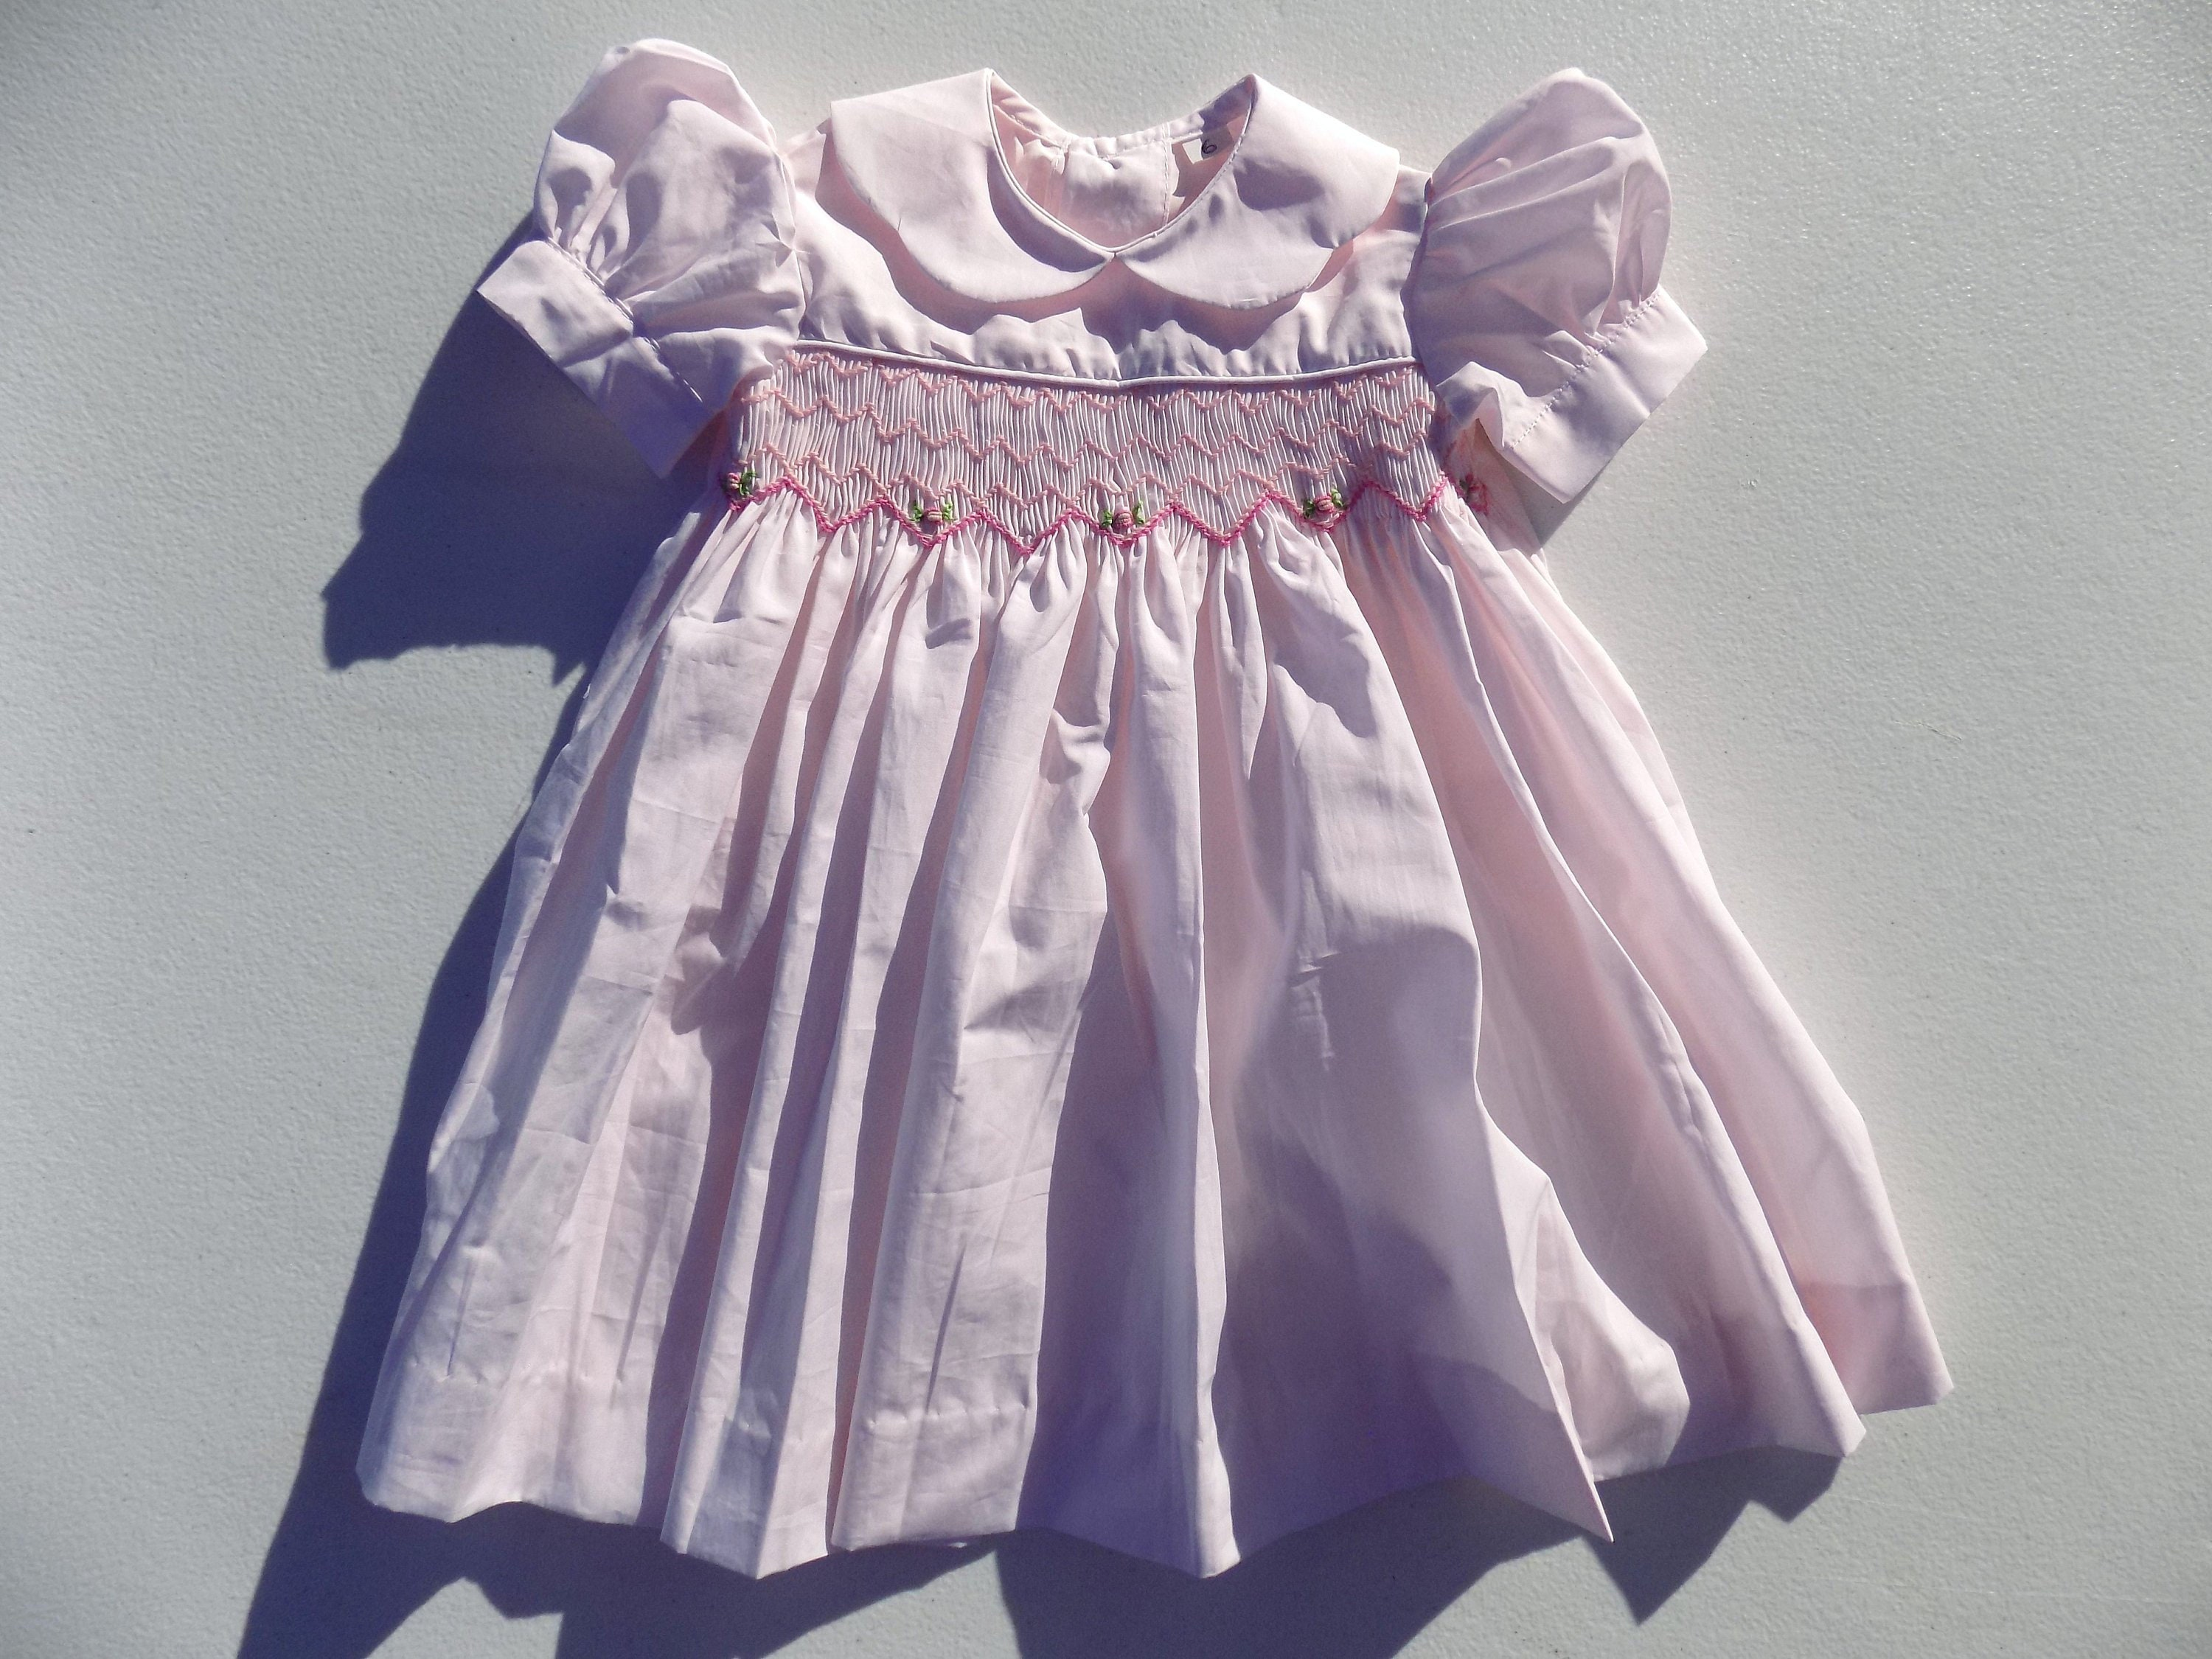 Hand Embroidered Dress Baby Girl Pink Cotton Ceremony Baptism Birthday Gift 6 9mois 9 12 Months